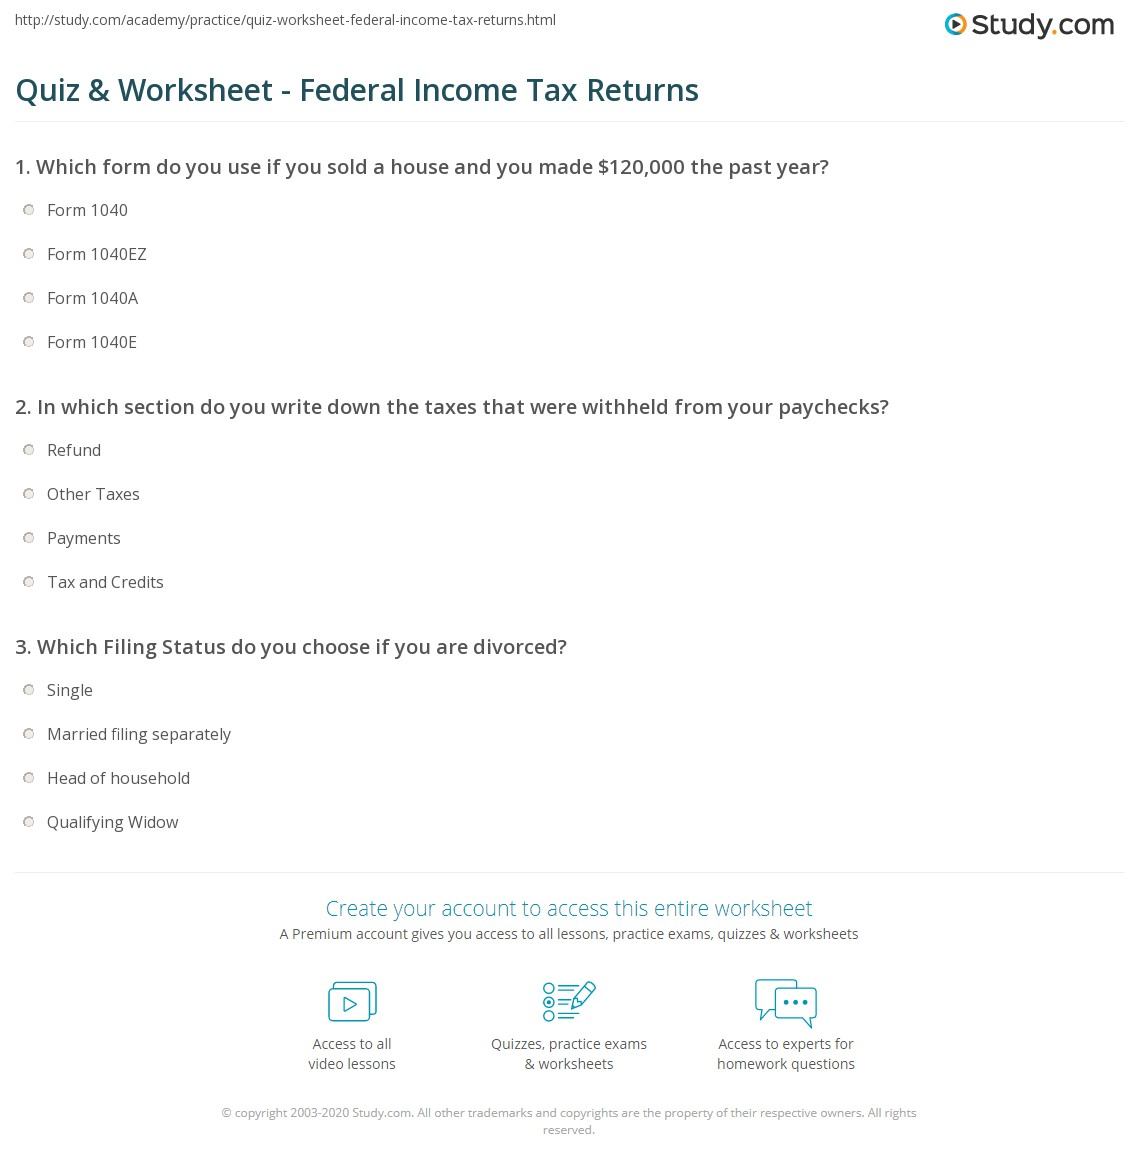 Worksheets Social Security Benefits Worksheet 1040a quiz worksheet federal income tax returns study com print how to file a return worksheet